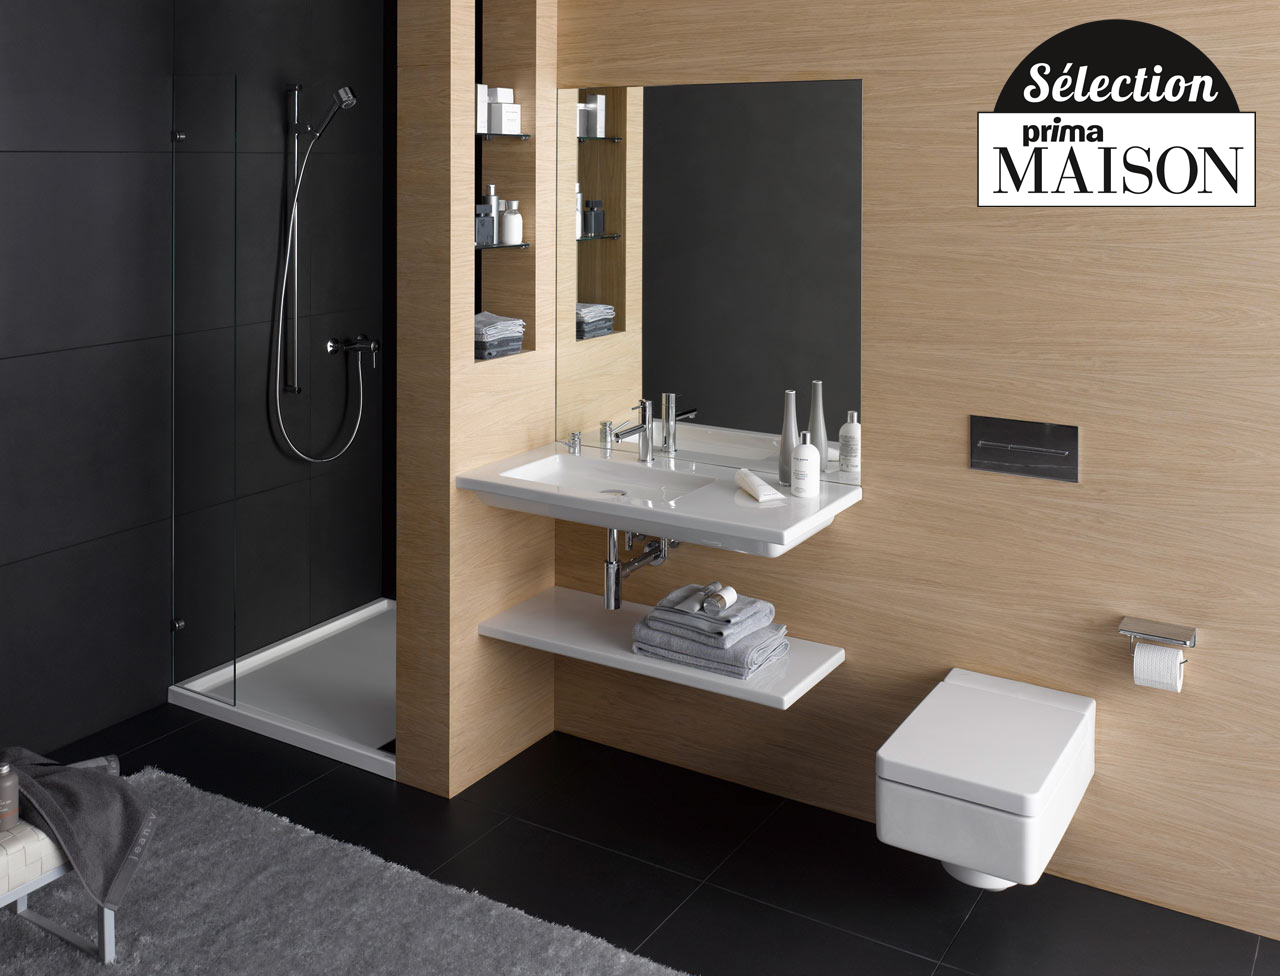 D coration salle de bain 2016 exemples d 39 am nagements for Decoration du salle de bain